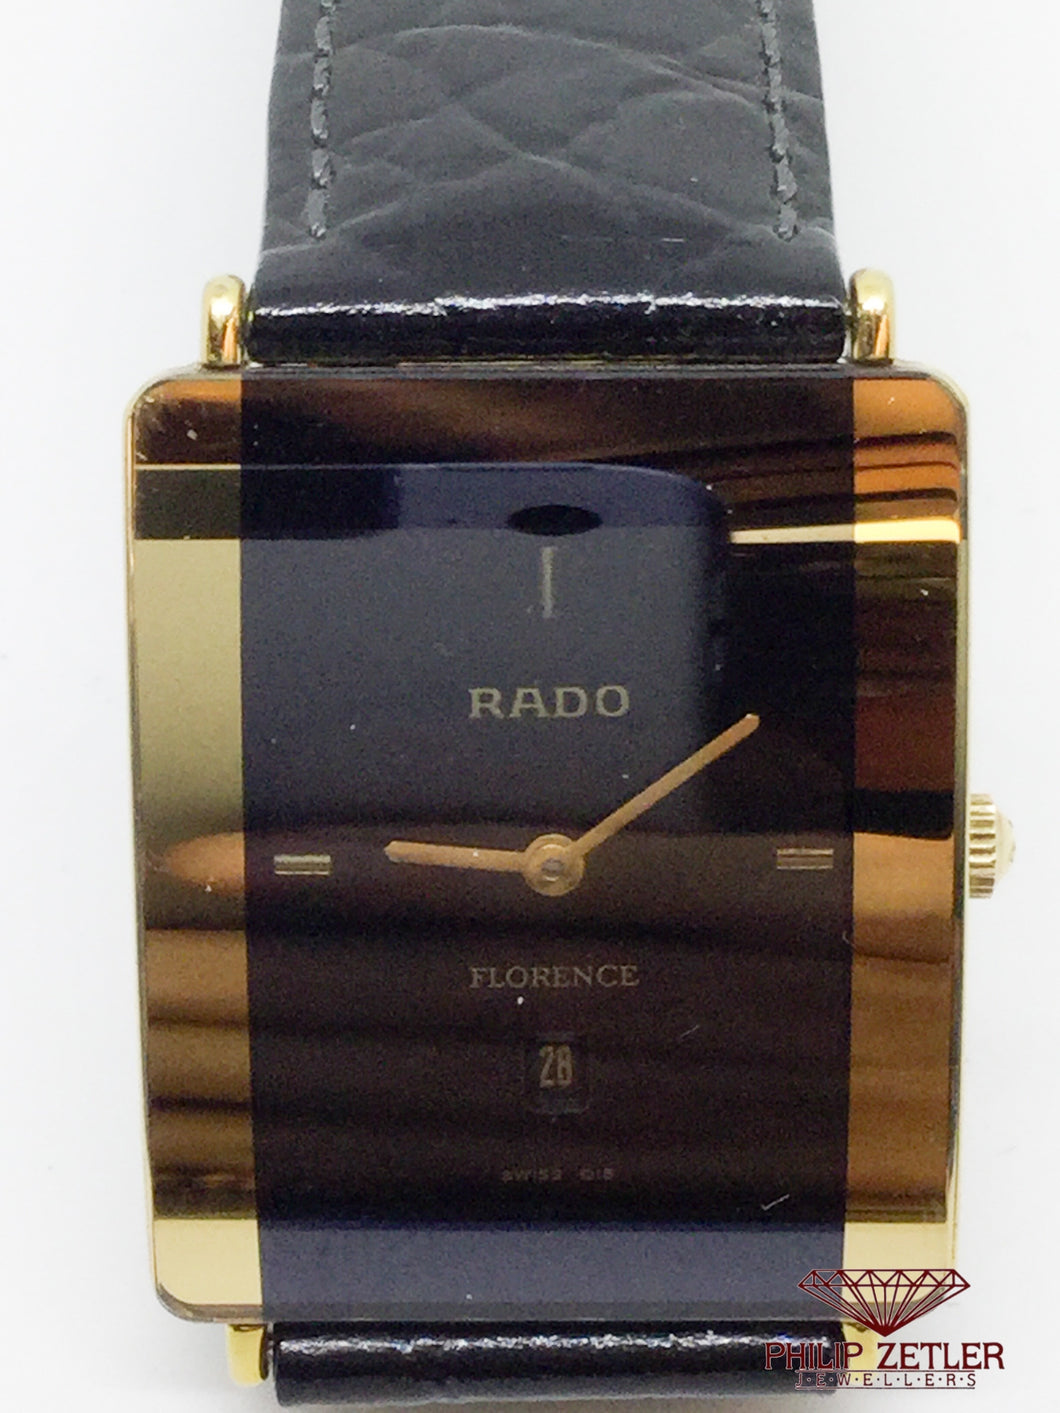 Rado Watch On Leather